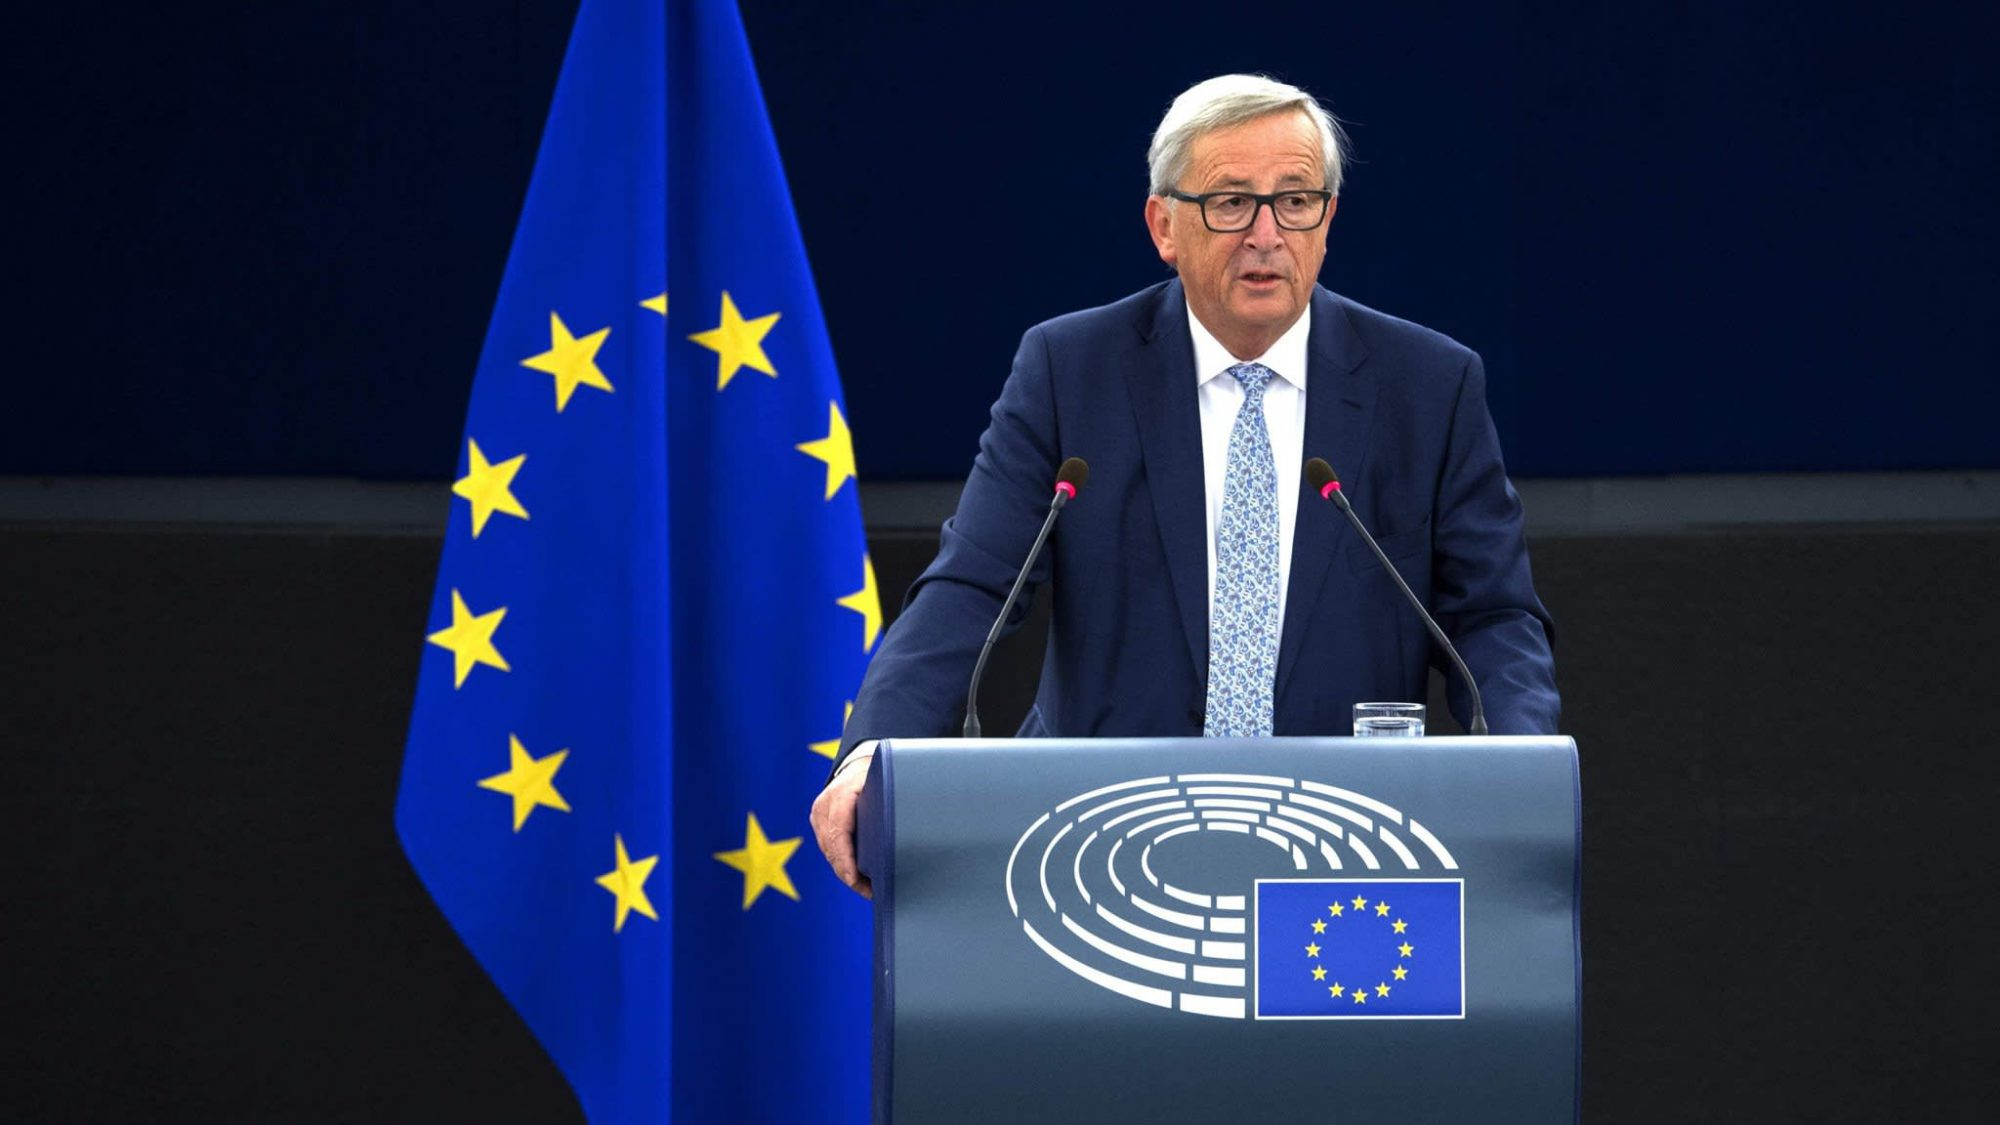 Junker: EU needs to open up to the Western Balkans to prevent risk of new wars